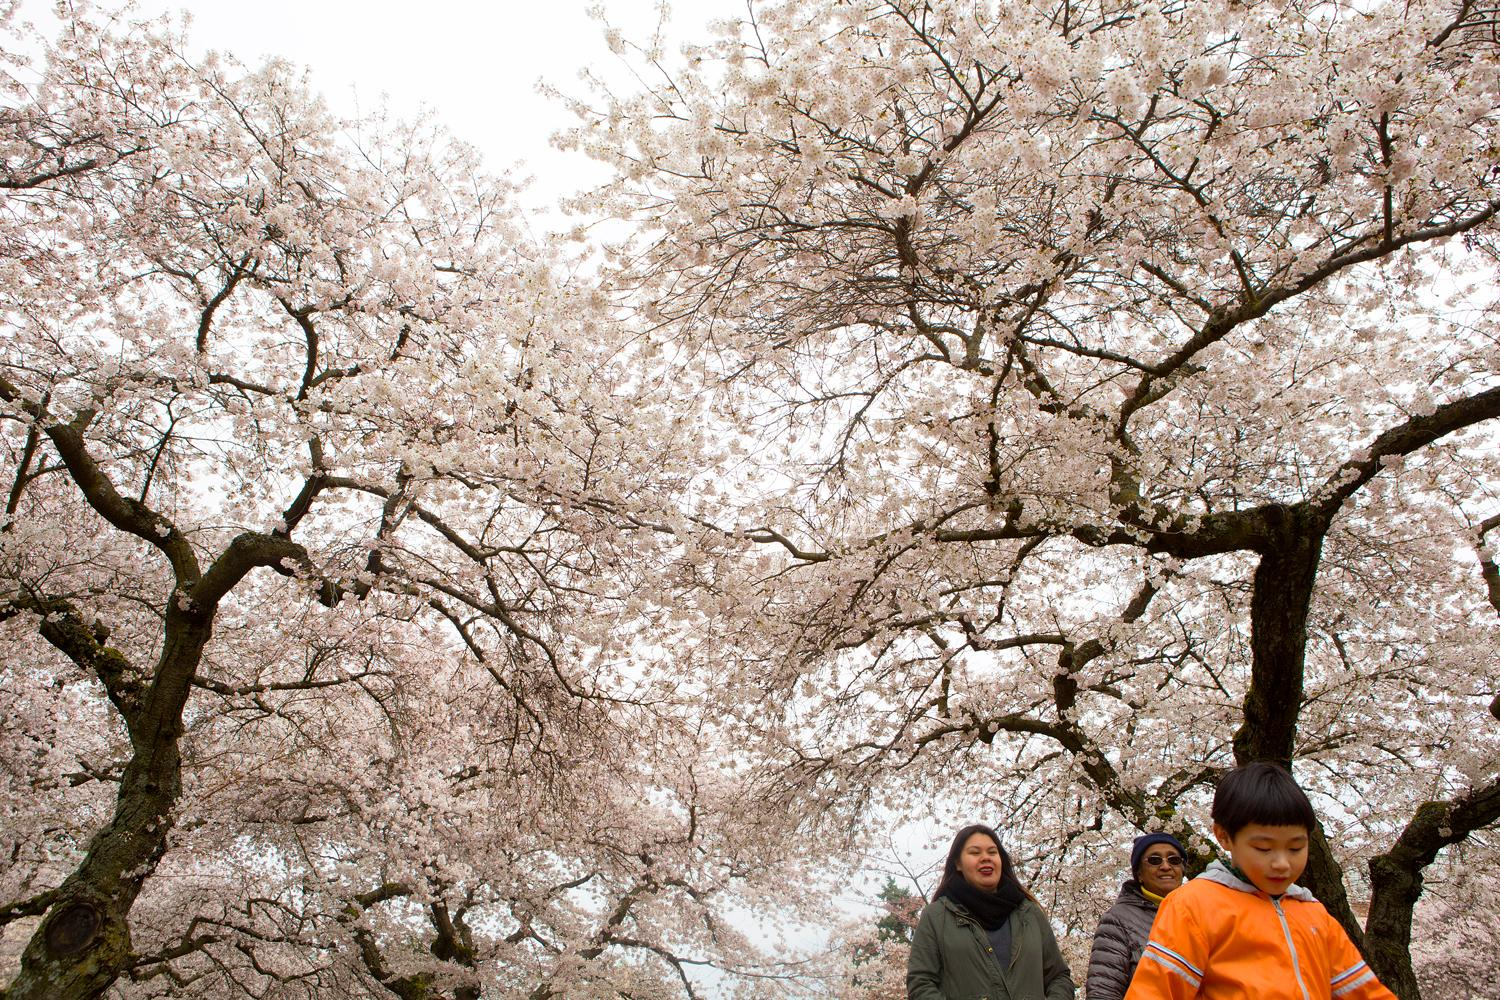 The cherry blossoms are in full bloom at the University of Washington's campus. (Sy Bean / Seattle Refined)